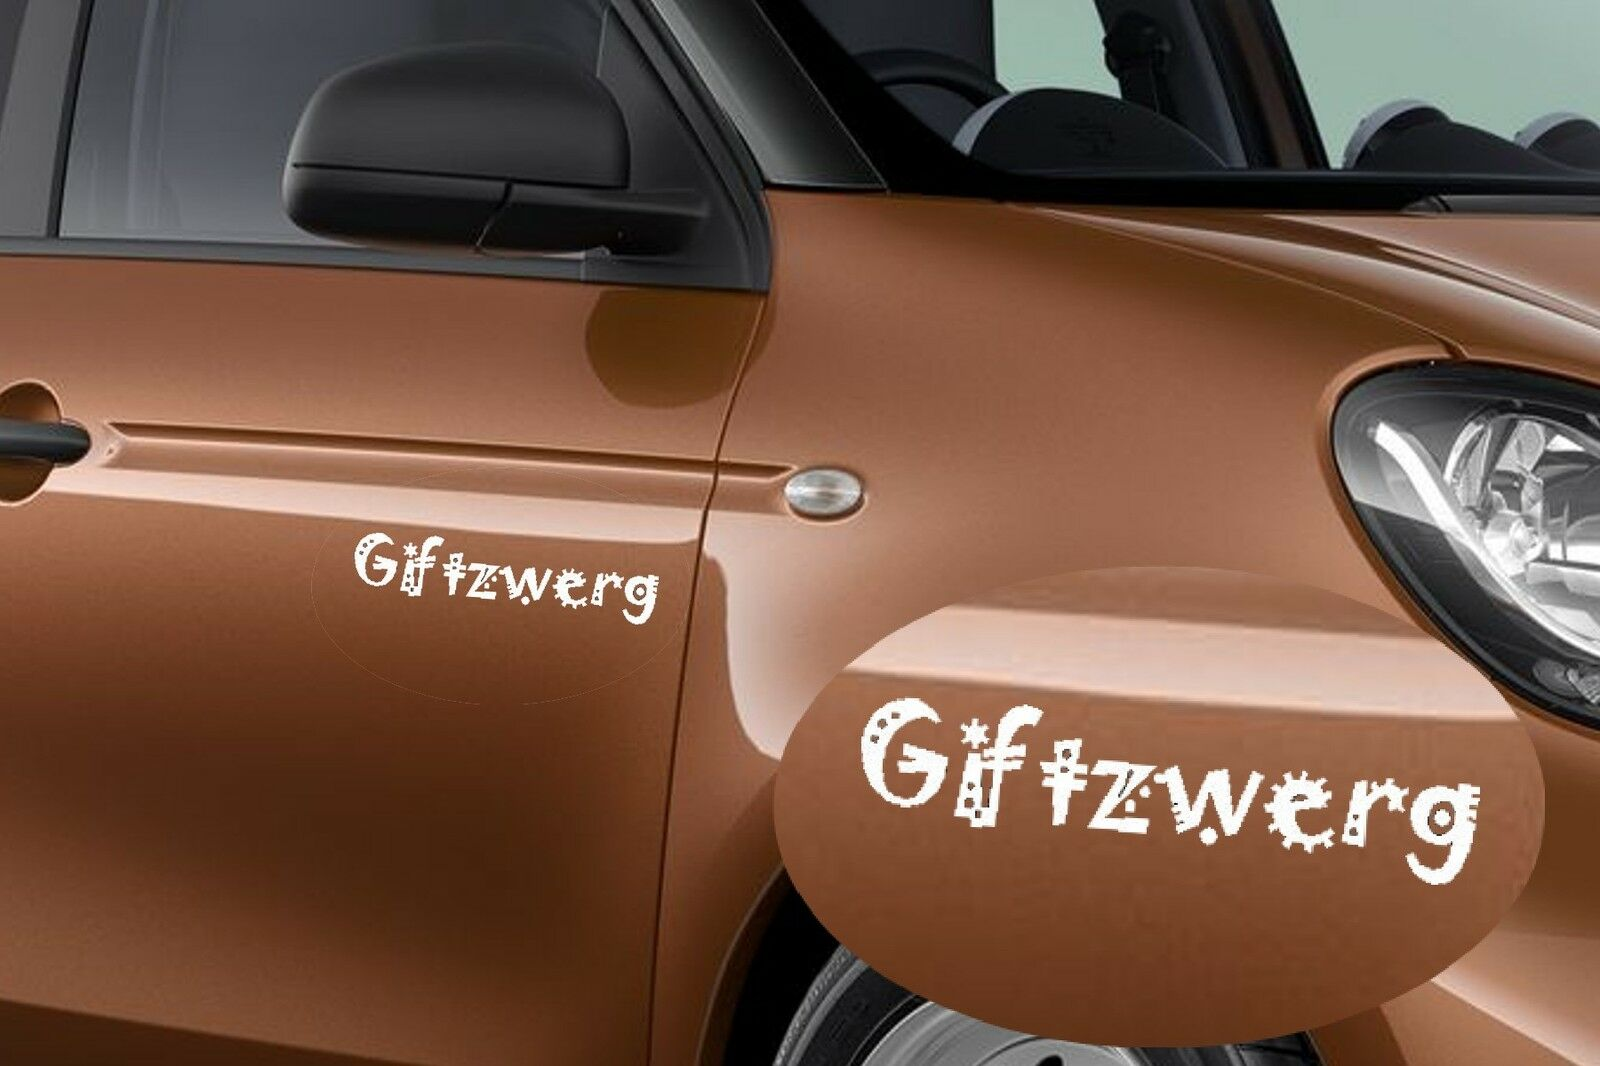 Smart car sticker designs - Without Giving Follows Delivery To White